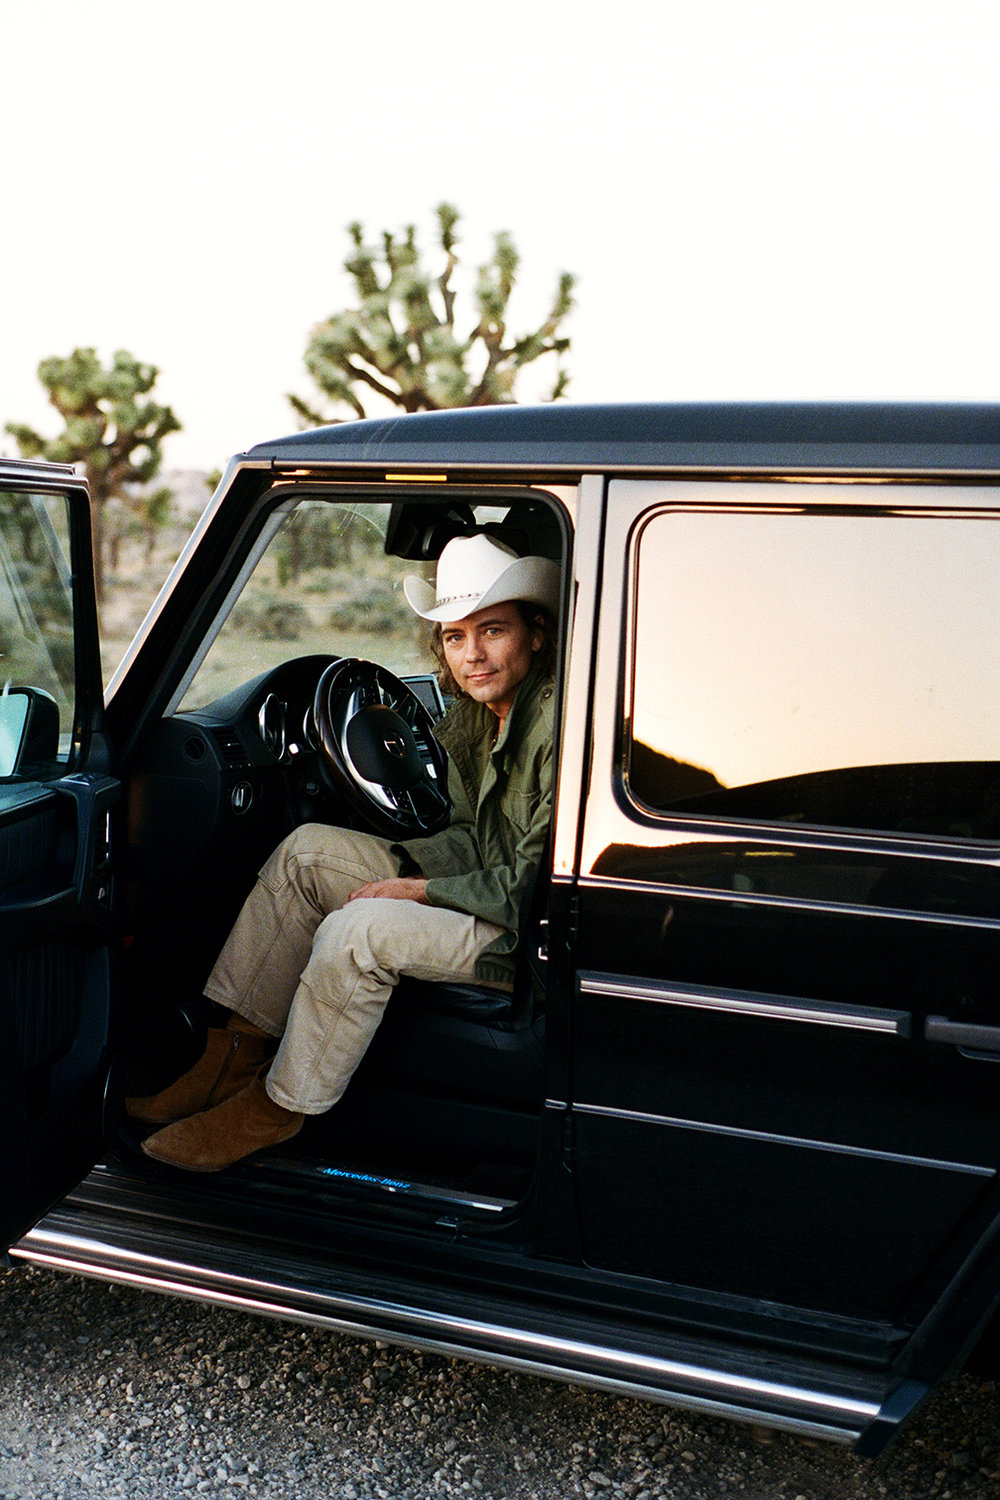 Cory Becker in G Wagon_0030.jpg